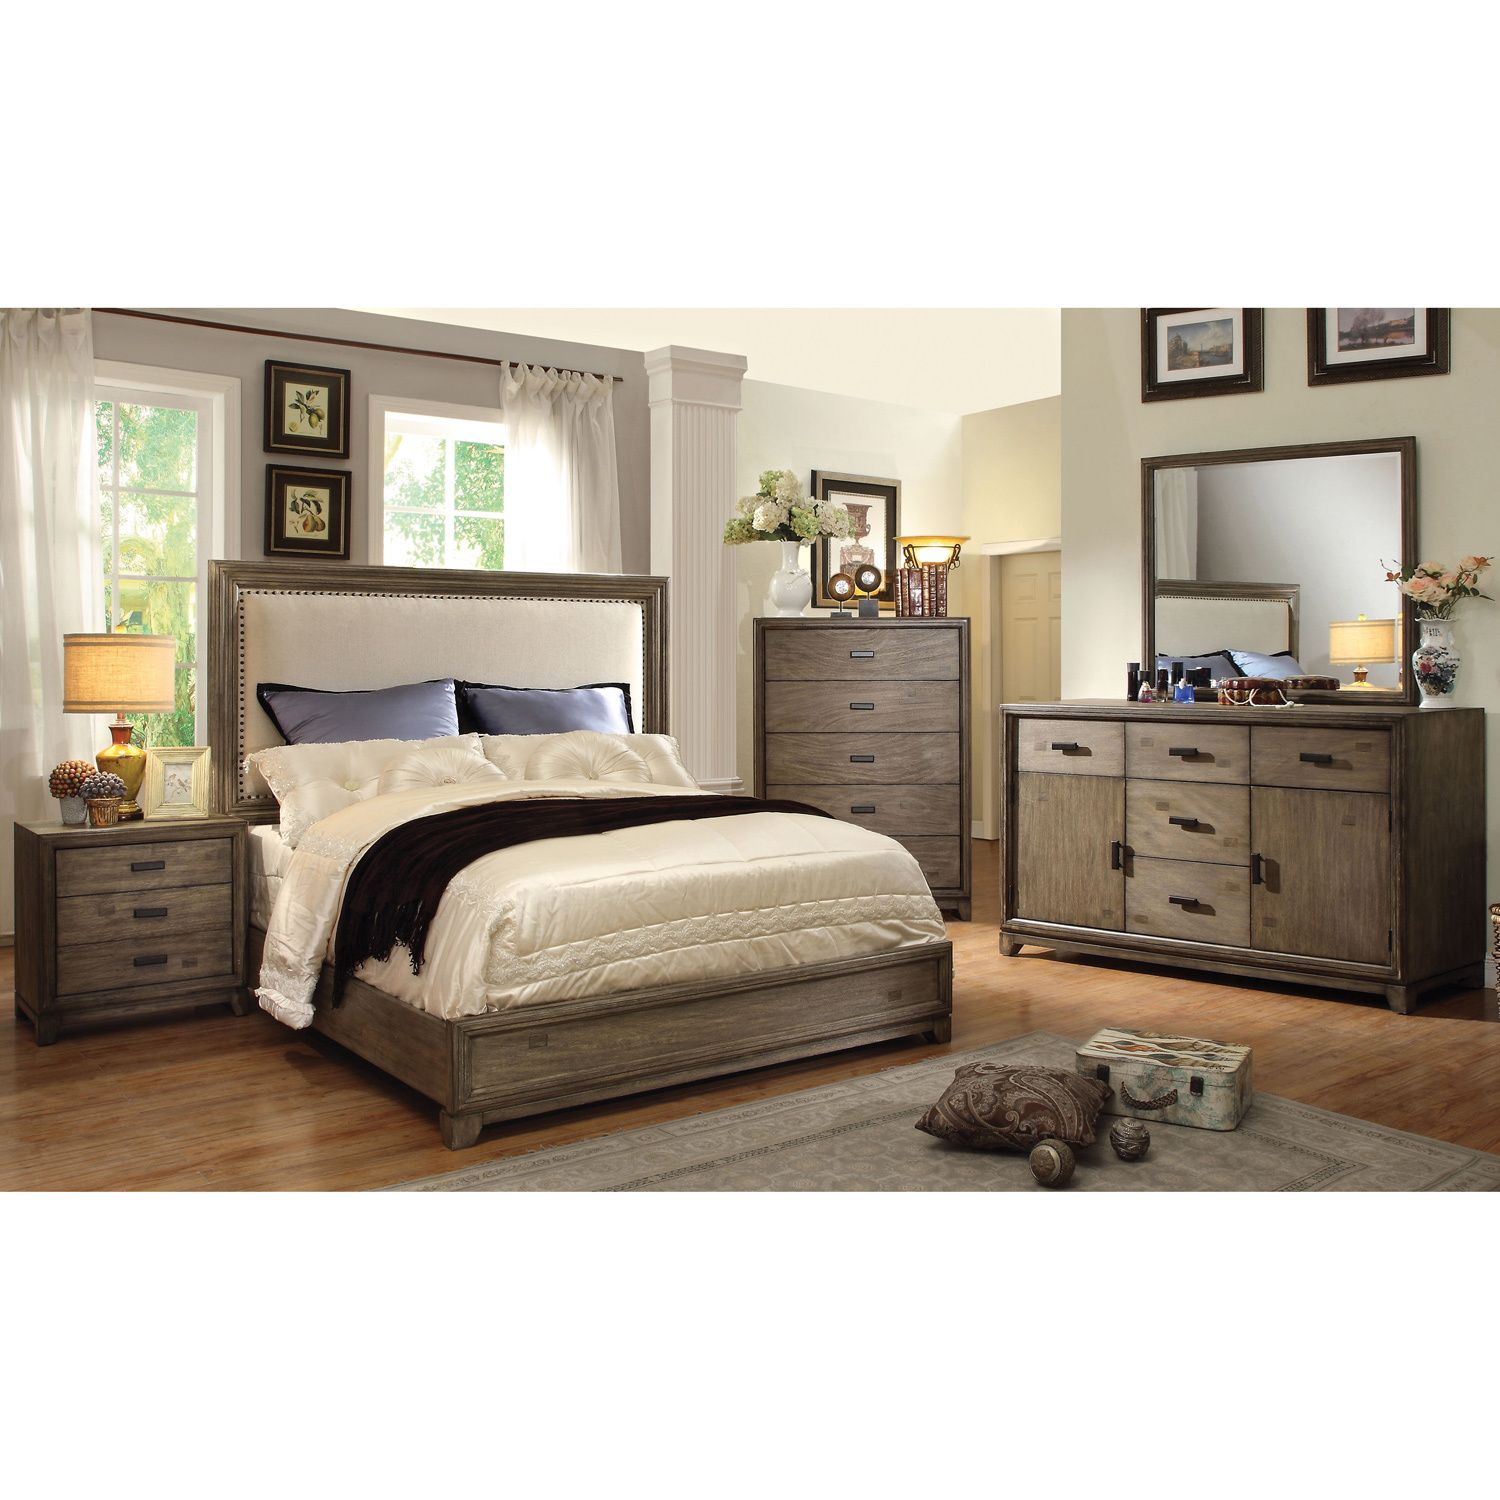 Cool rustic tones are sure to be an elegant addition to - Rustic elegant bedroom furniture ...